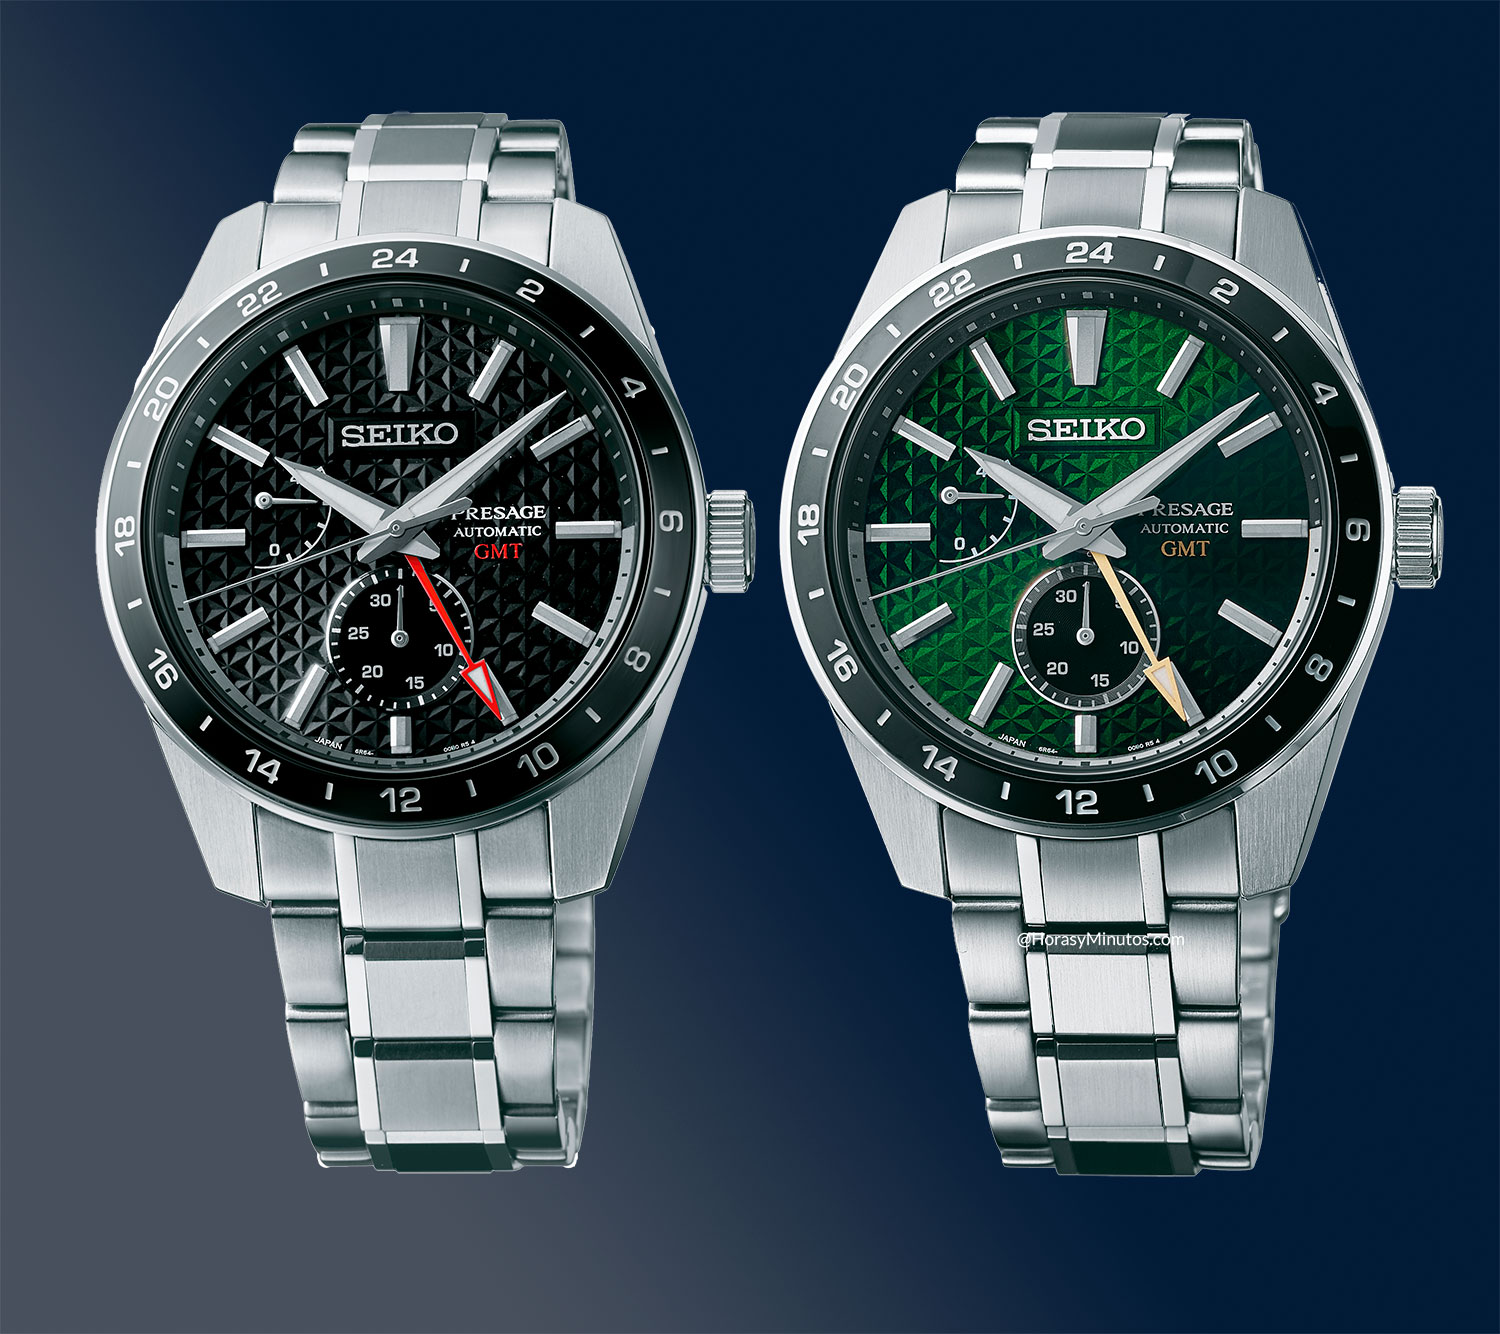 Seiko Presage Sharp Edged GMT negro y verde